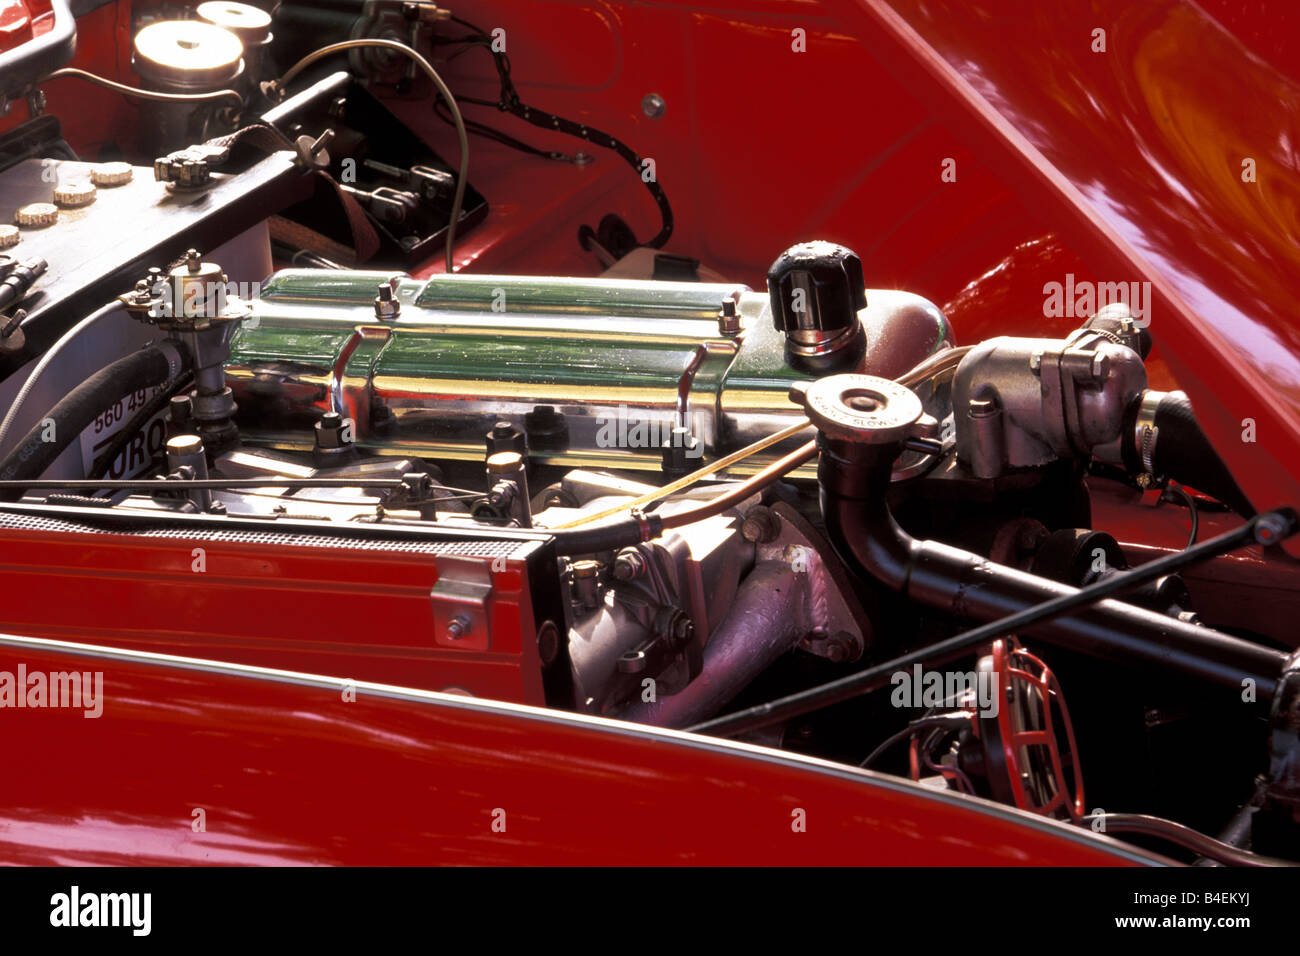 Car, Triumph TR 4, vintage car, model year 1962, 1960s, sixties, red, convertible, engine compartment, engine , - Stock Image